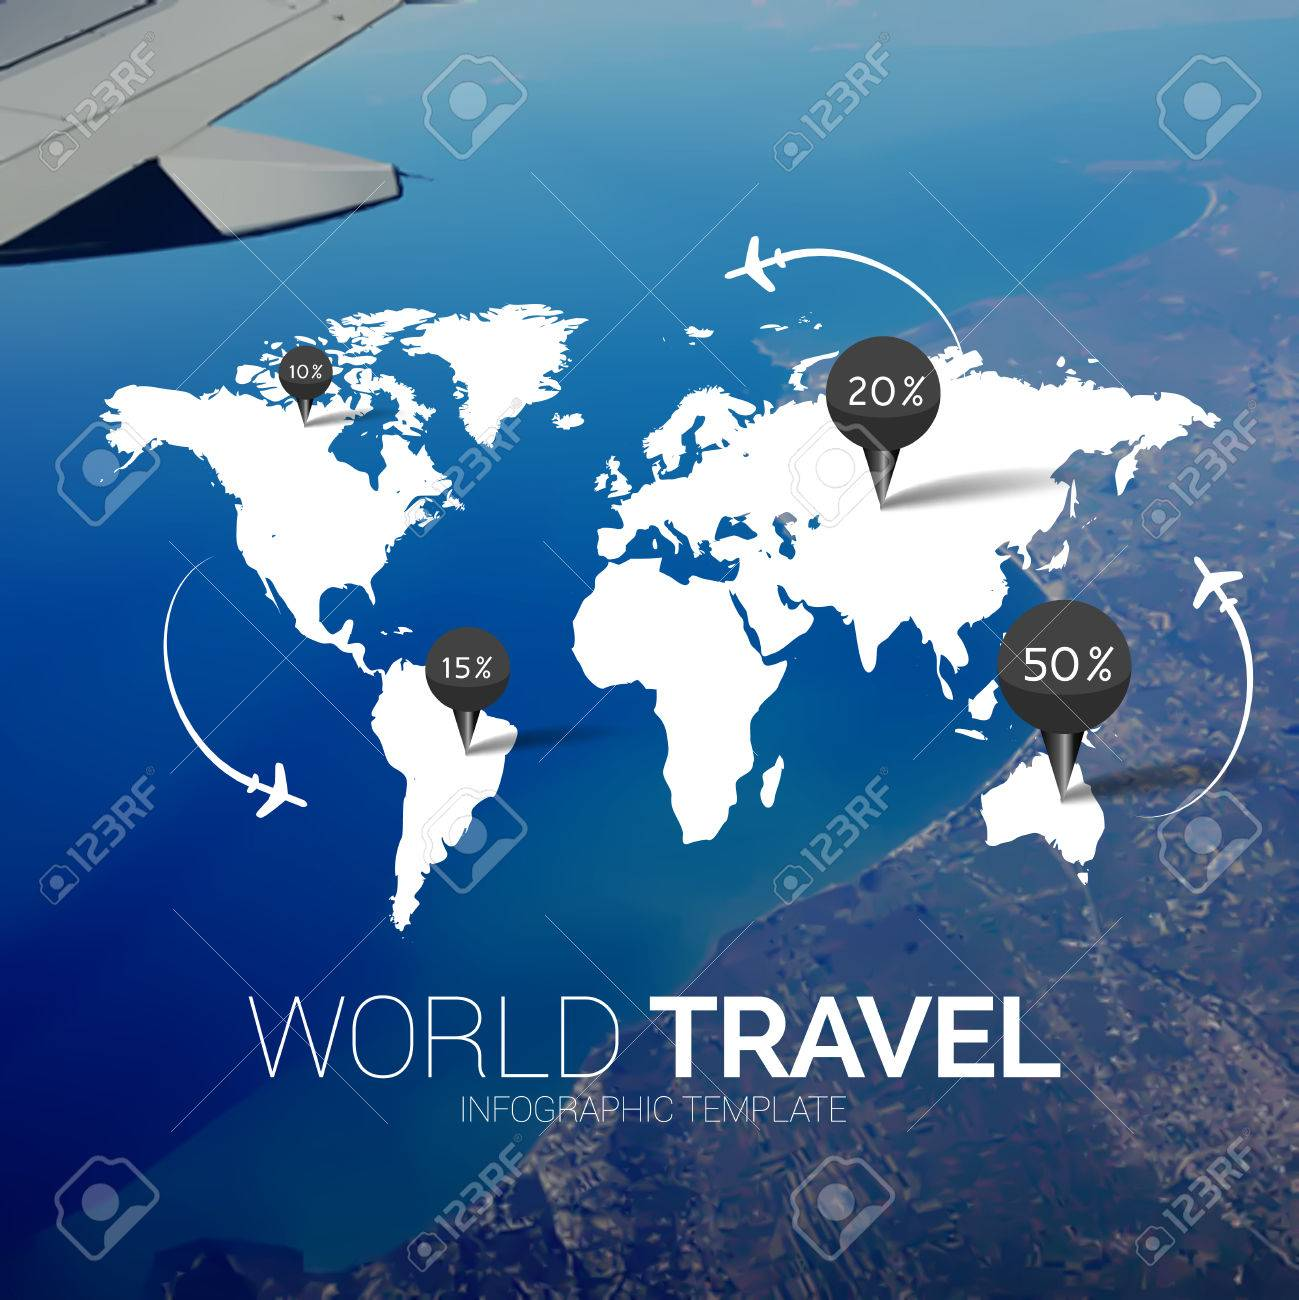 Vector template world map on blurred nature background points world map on blurred nature background points travel concept web mobile interface template corporate website design or background backdrop gumiabroncs Choice Image